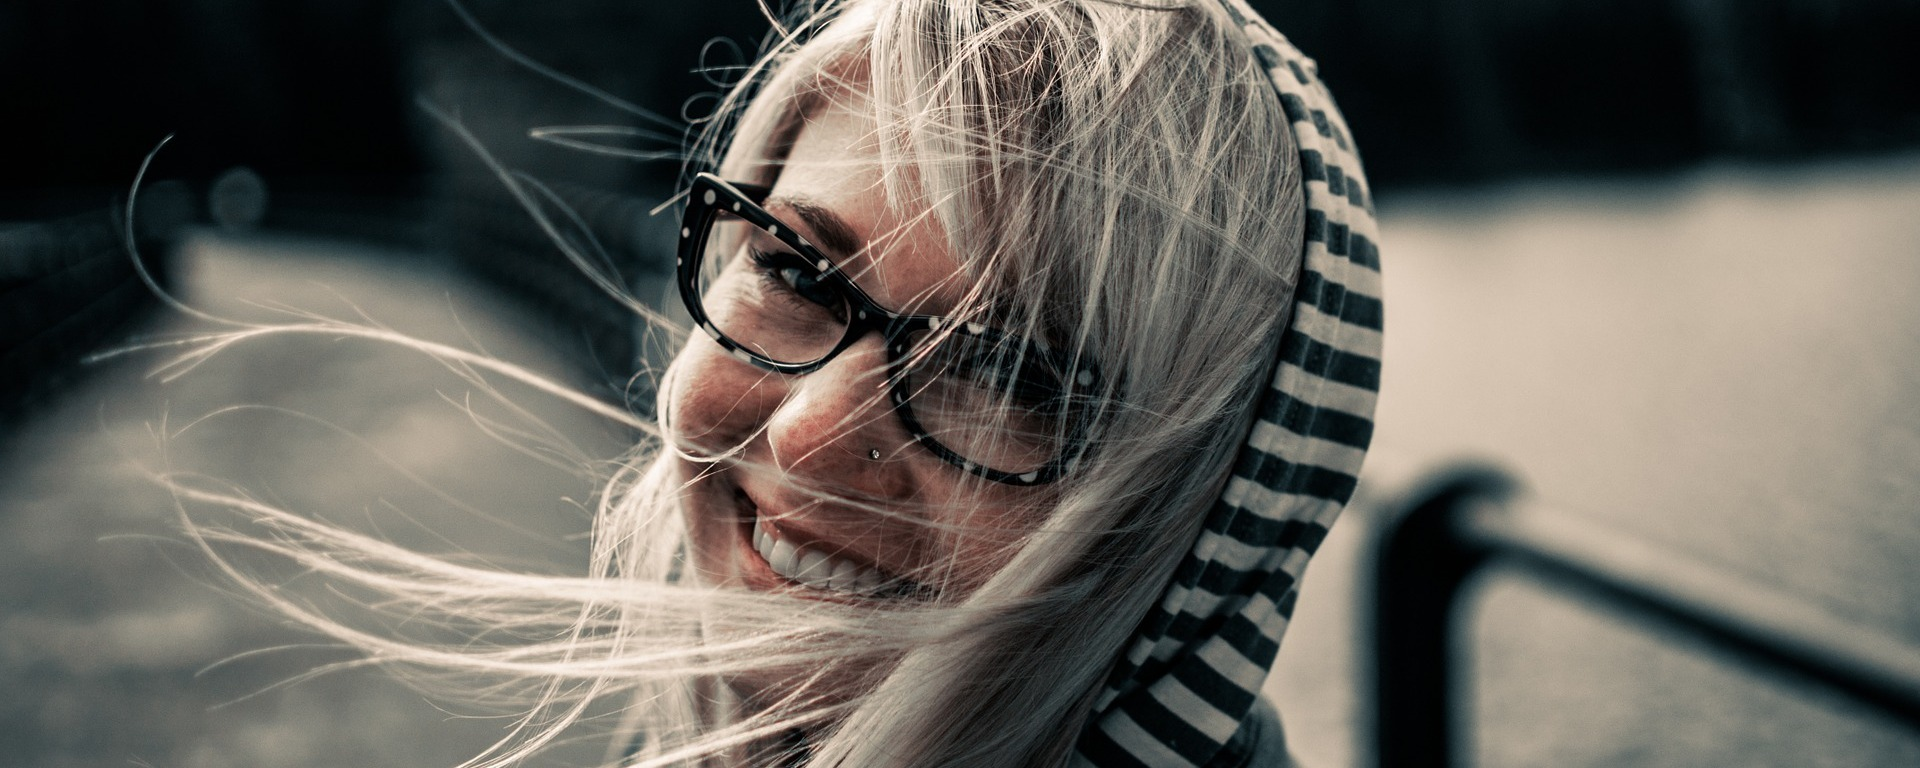 girl,smiling,female,woman,young,attractive,portrait,happiness,face,blonde,windy,model,happy,smile,laughing,joy,joyful,expression,glasses,eyeglasses,youth,person,cheerful, DON CHARISMA